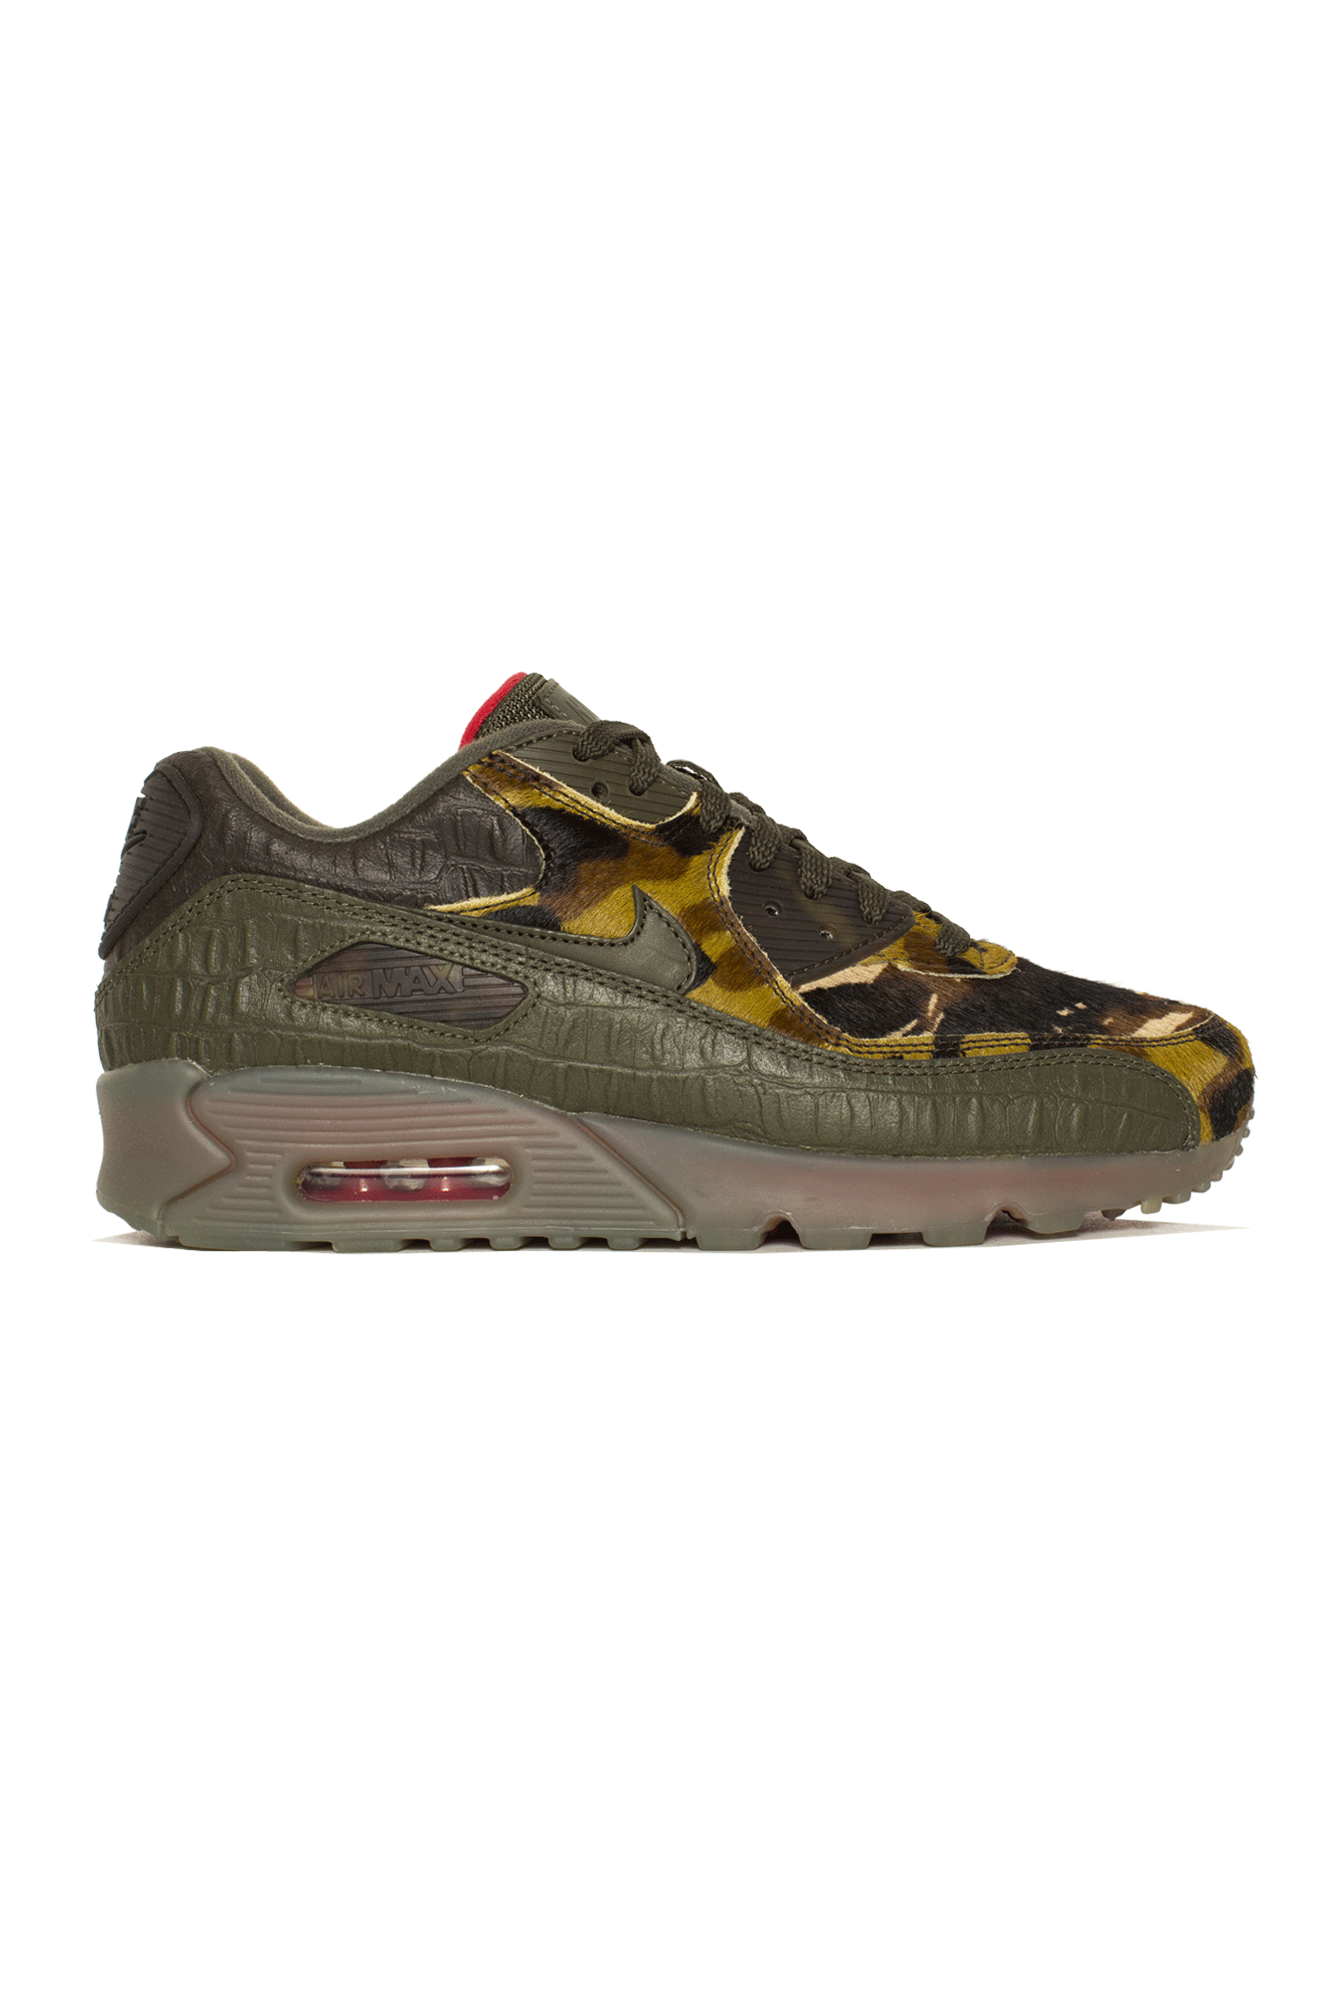 Nike Sneakers Air Max 90 Brown CU0675-#000#300#7 - One Block Down